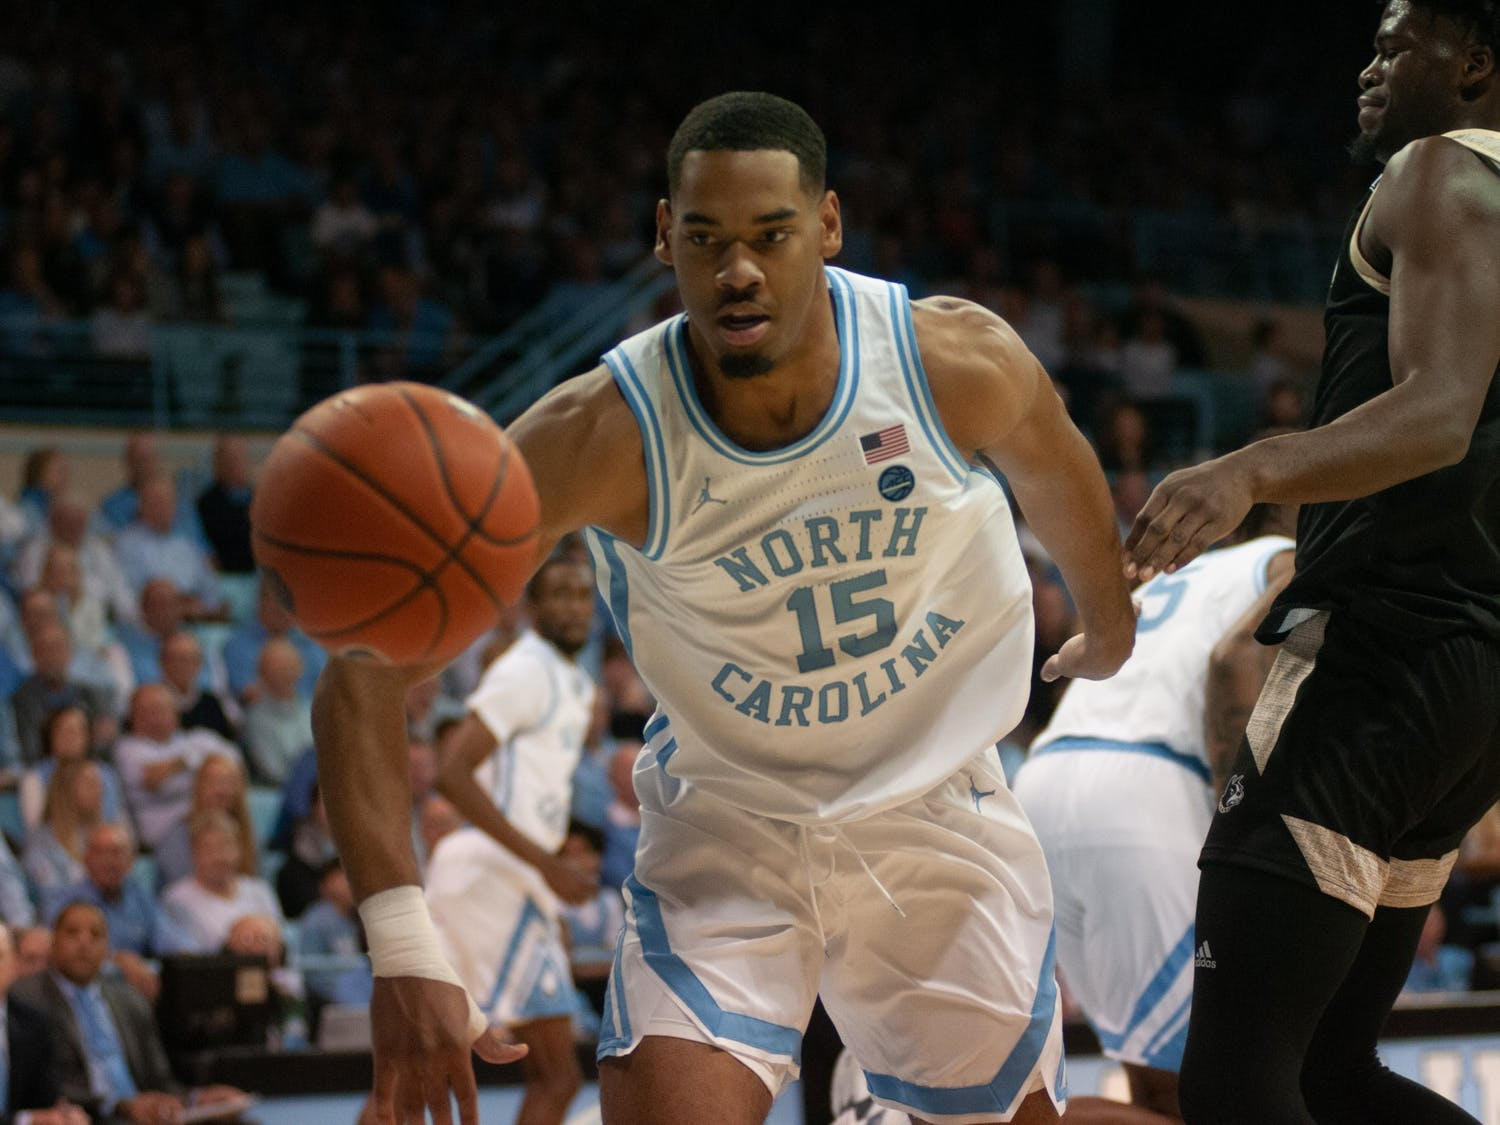 UNC junior forward Garrison Brooks (15) dribbles down court in Carmichael Arena on Sunday, Dec. 15, 2019 against Wofford. This is the first regular-season game the Tar Heels have played in Carmichael since 1986.